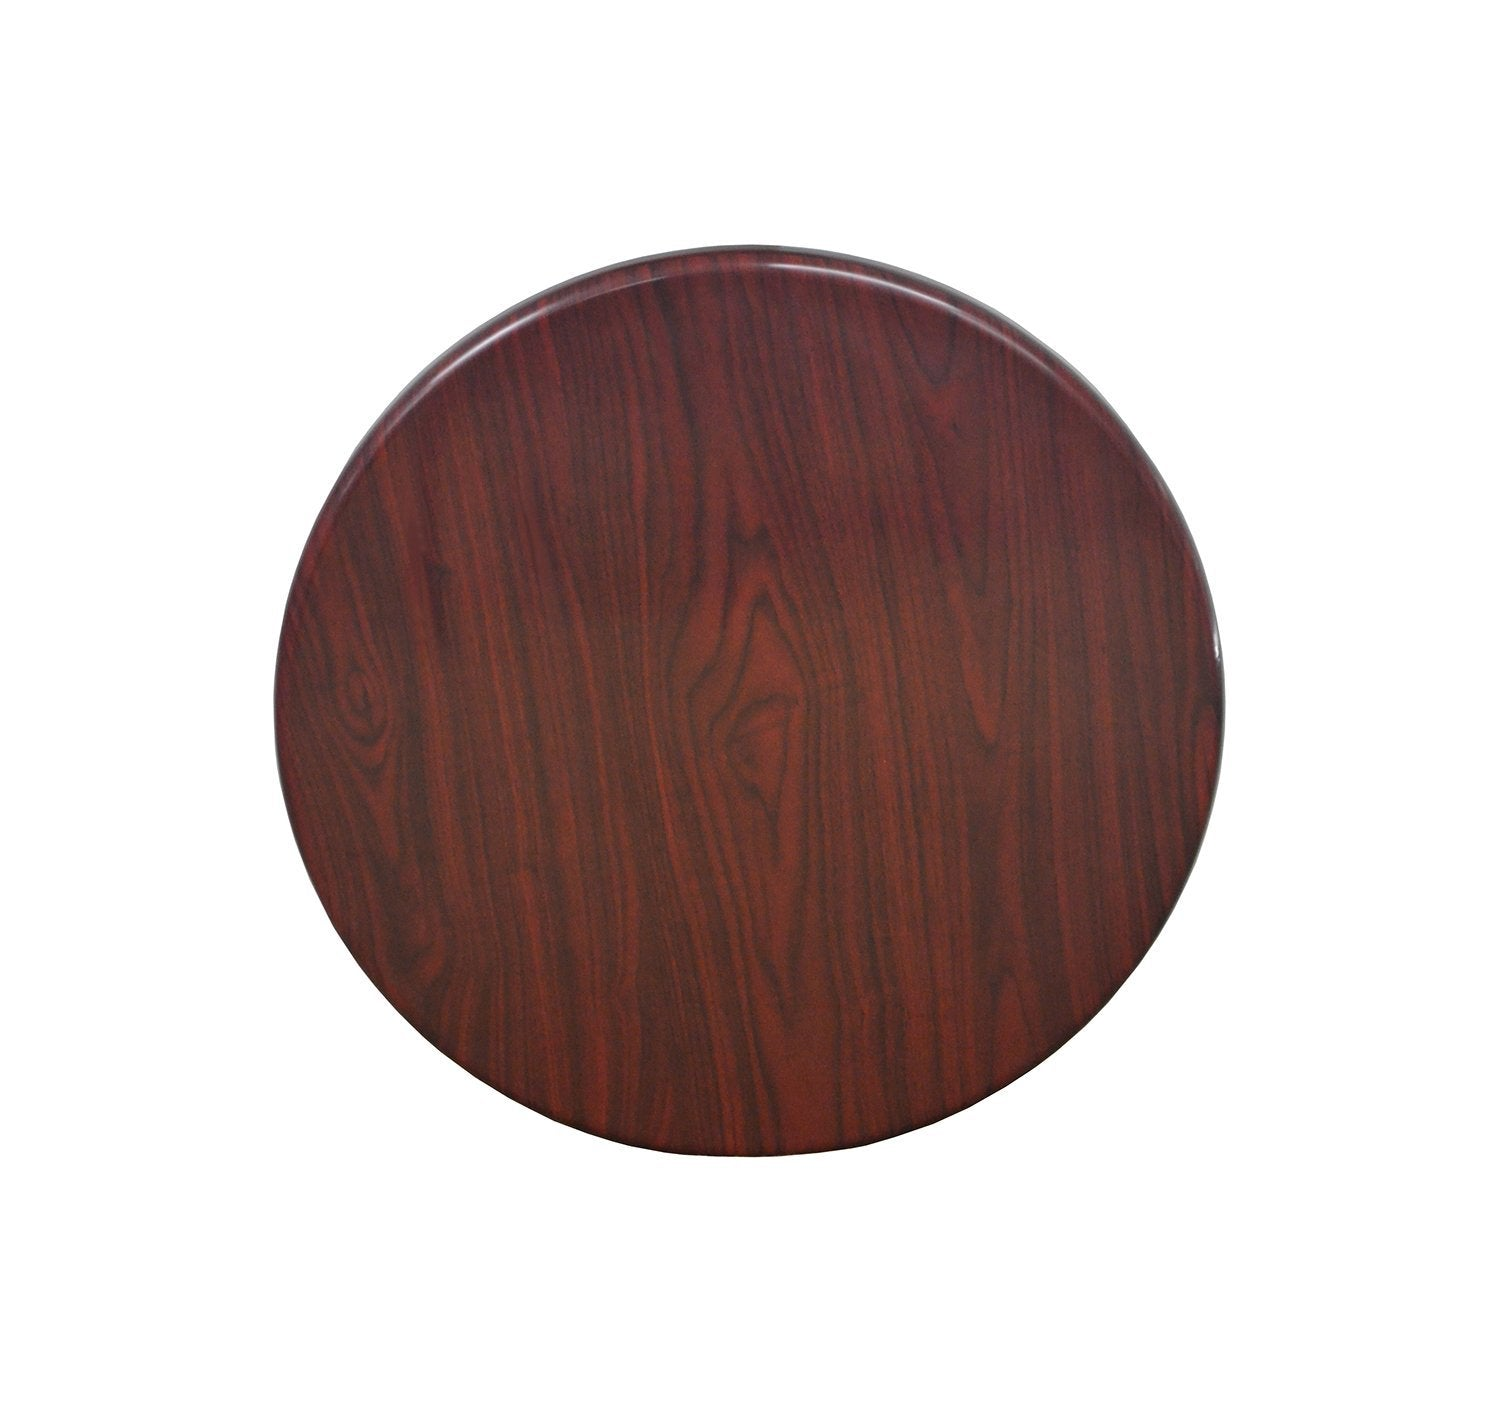 DHC T2-RH Resin Coated / Mahogany Color Coated Table Top for Restaurants